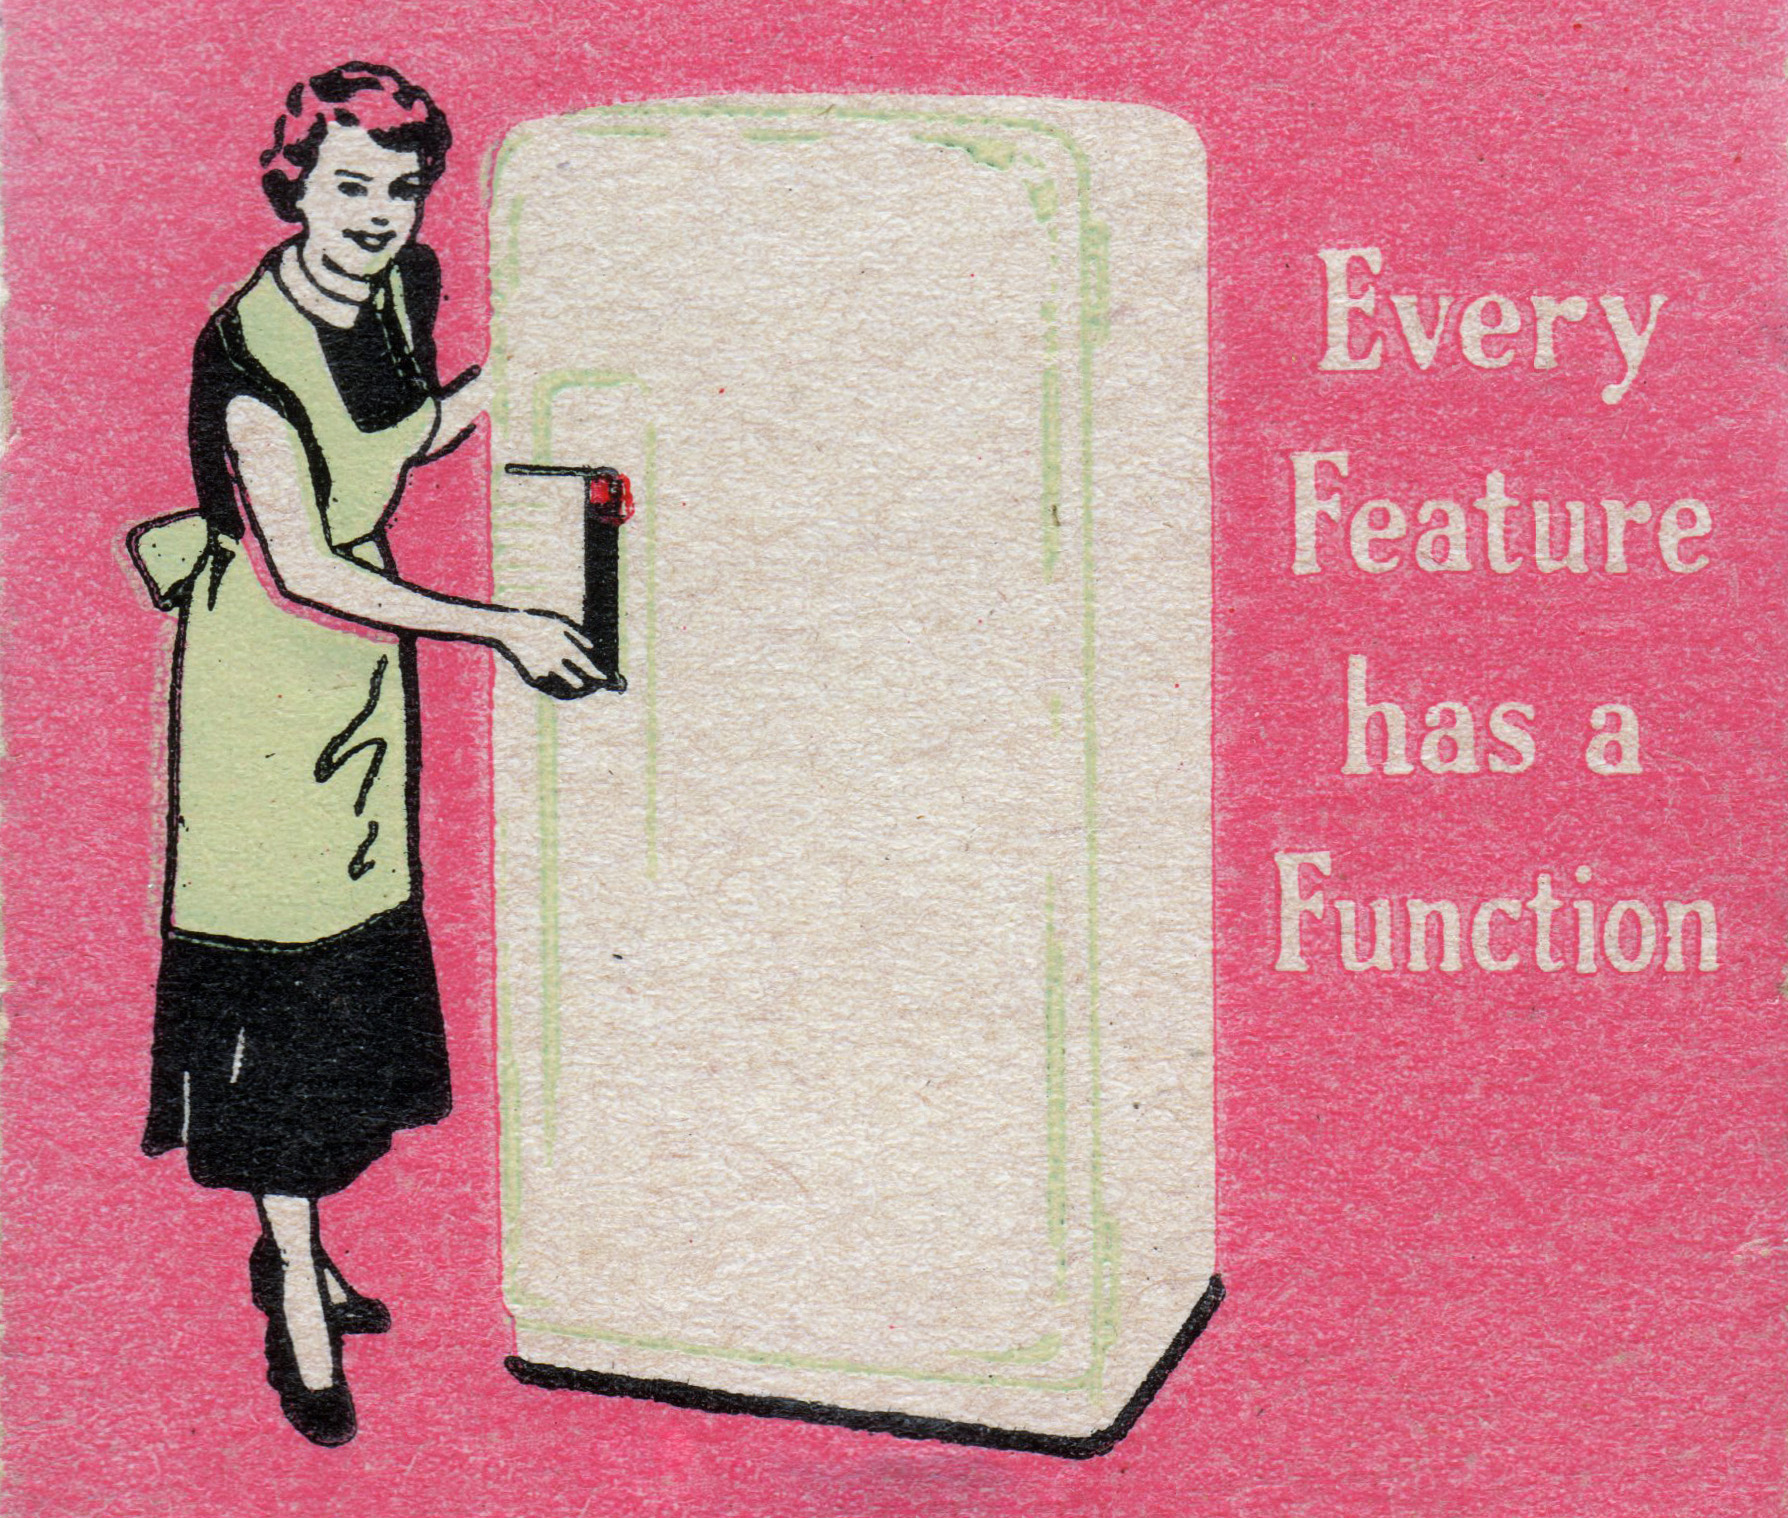 Every Feature Has a Function.jpg